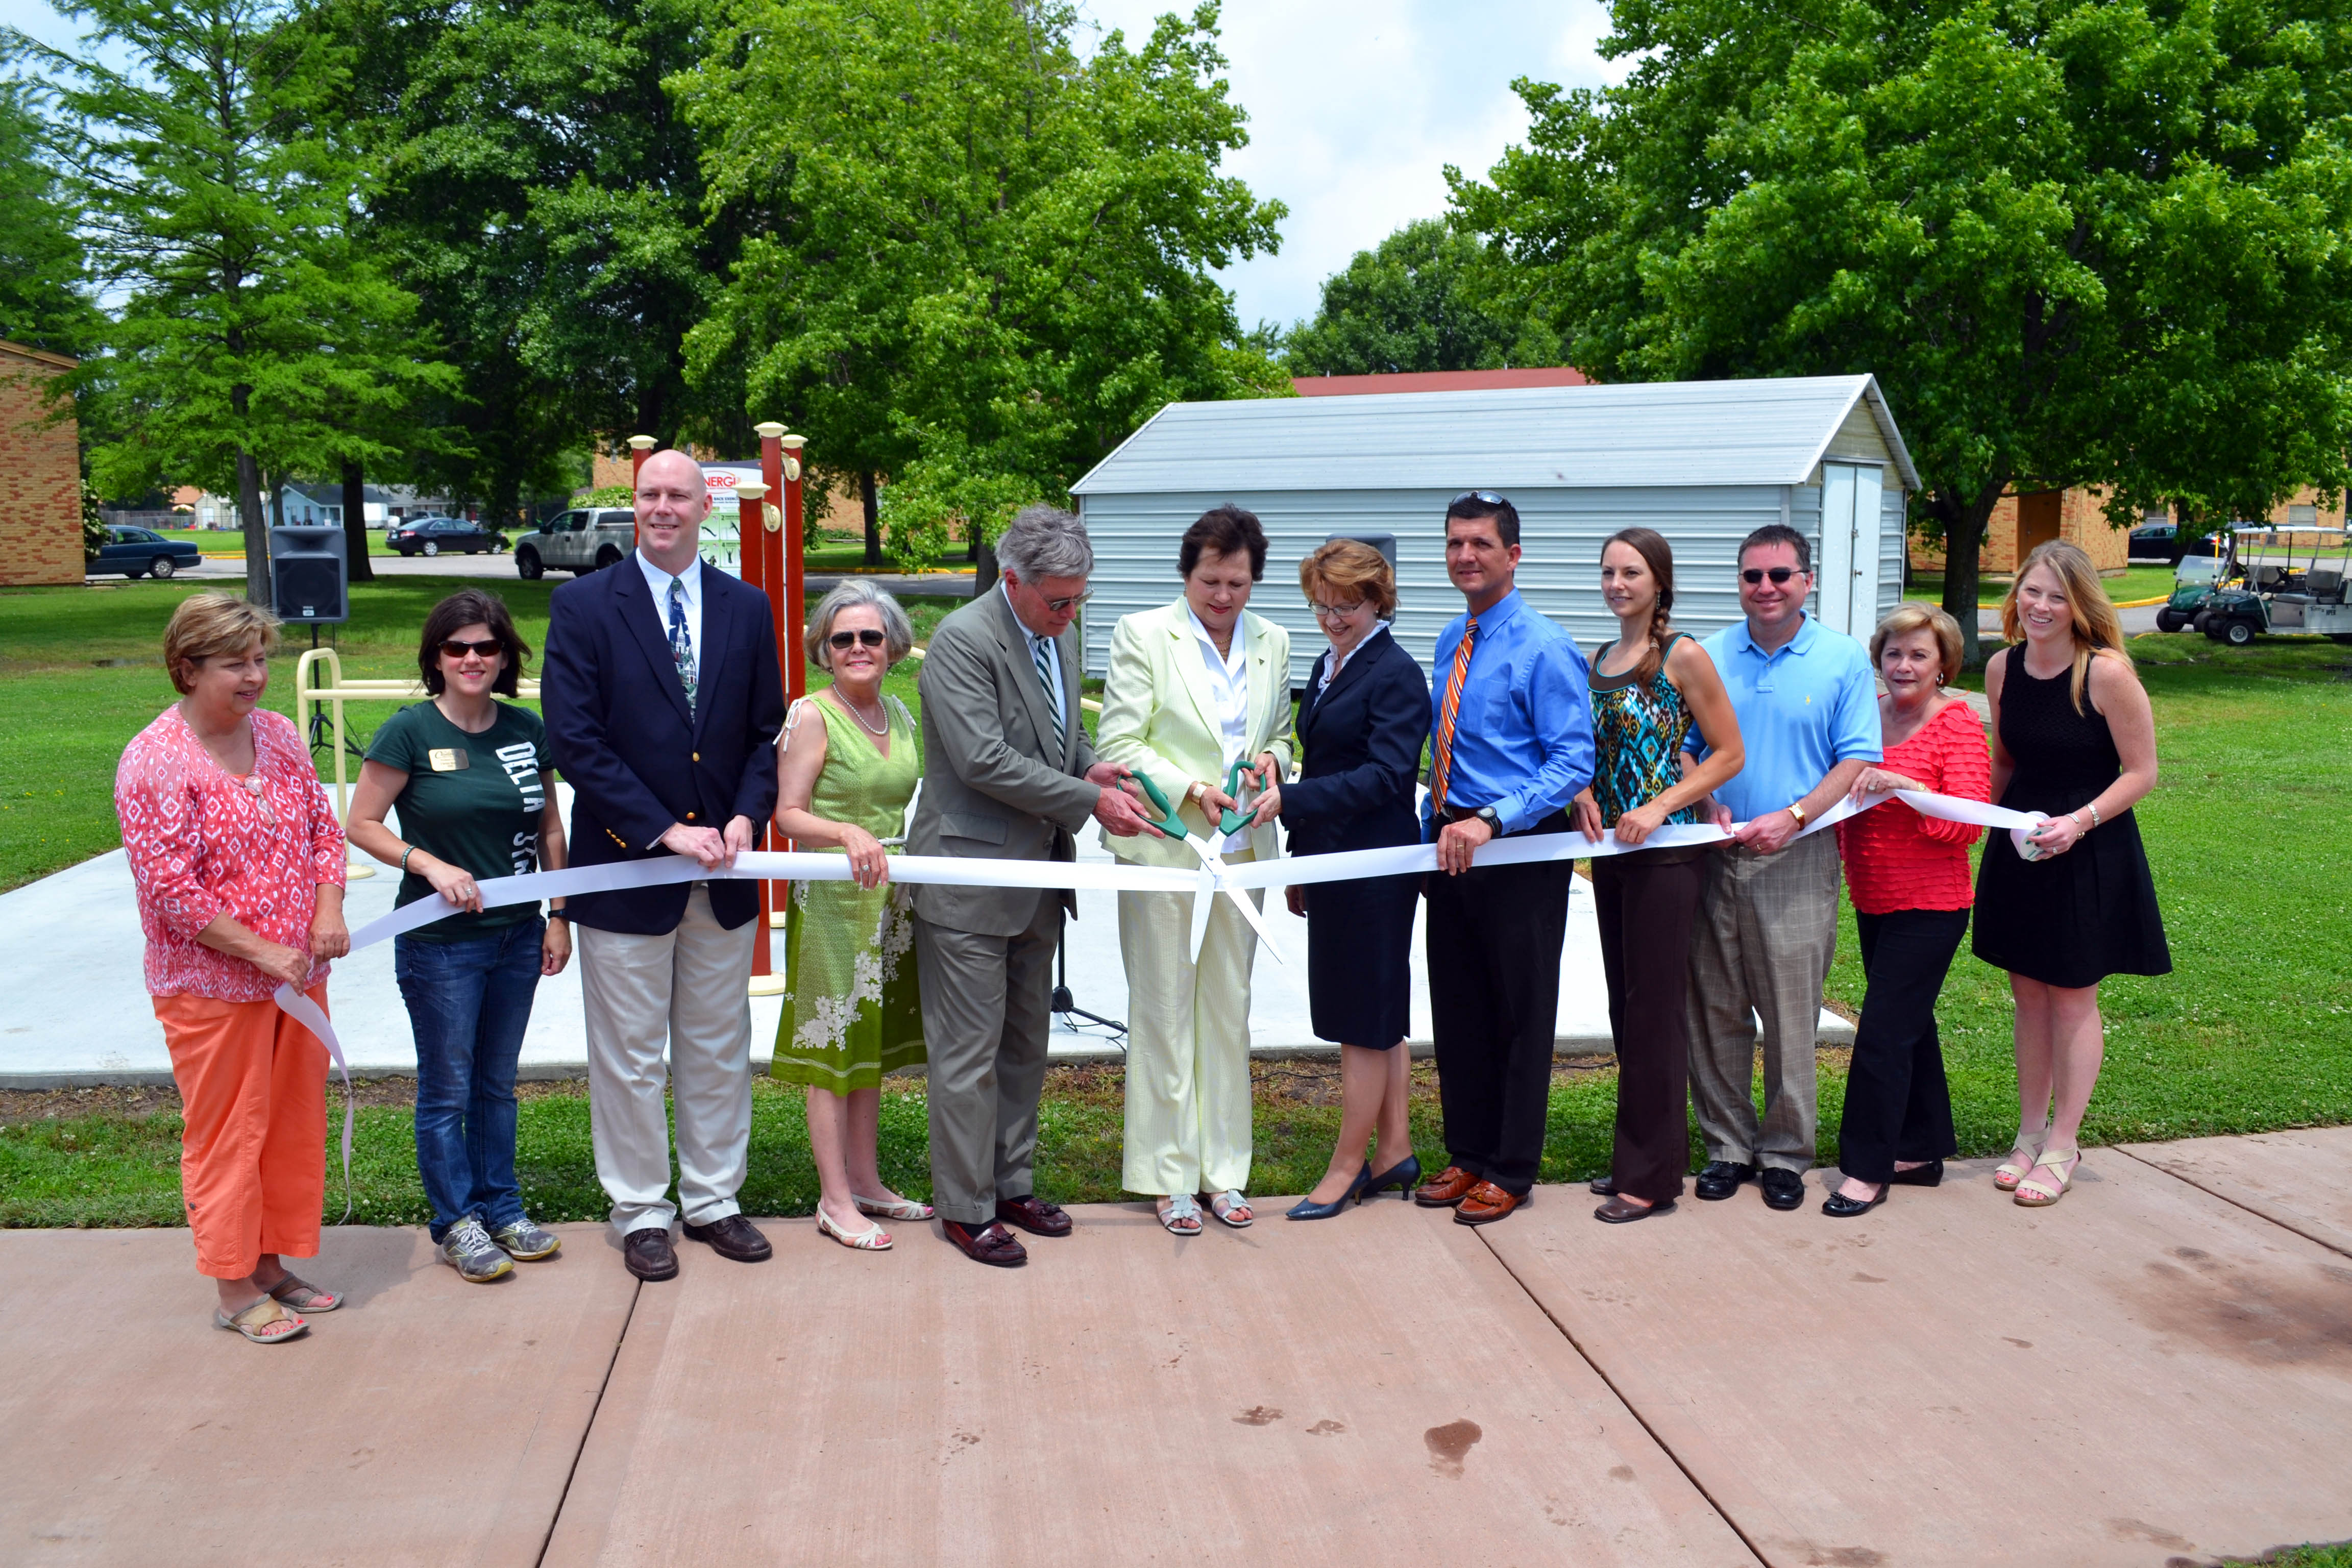 PHOTO:  Delta State University installs new exercise stations to its outdoor recreation facility. Pictured left to right are: Diane Makamson, Christy Riddle, Tim Colbert, Ann Lotven, William LaForge, Leslie Griffin, Sheila Grogan, Doug Pinkerton, Krista Davis, Rob Turner, Cynthia Petersen, and Suzette Matthews.